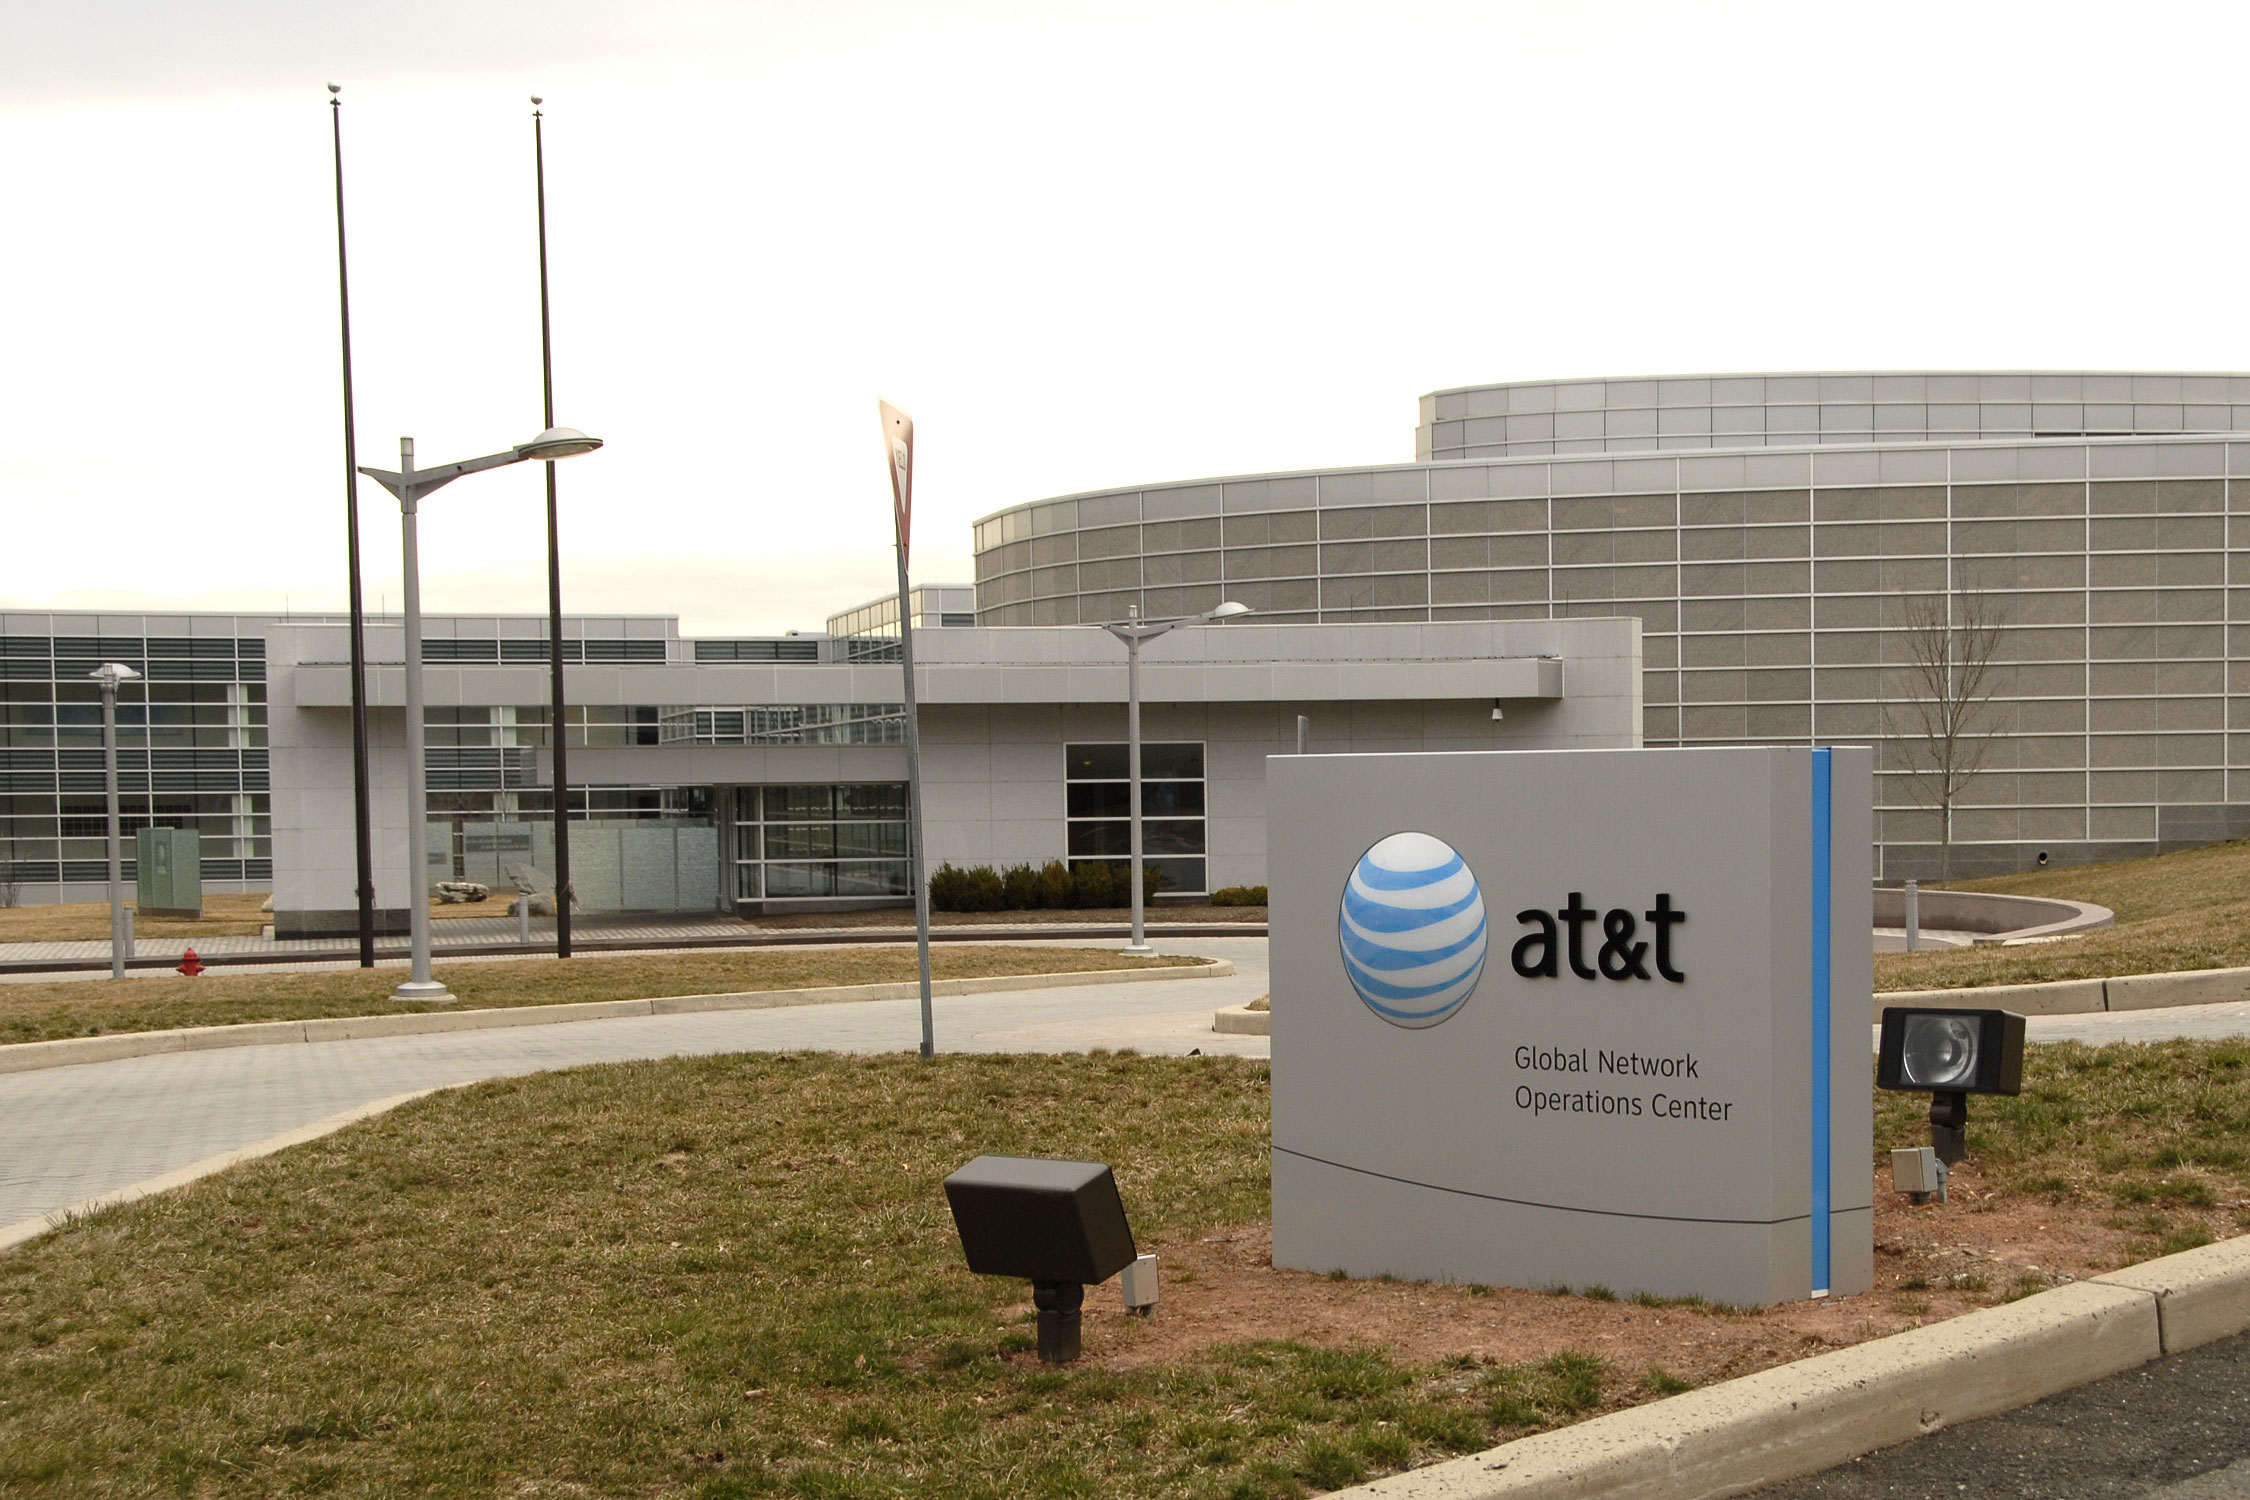 AT&T has approached carriers in Europe with offers for acquisition